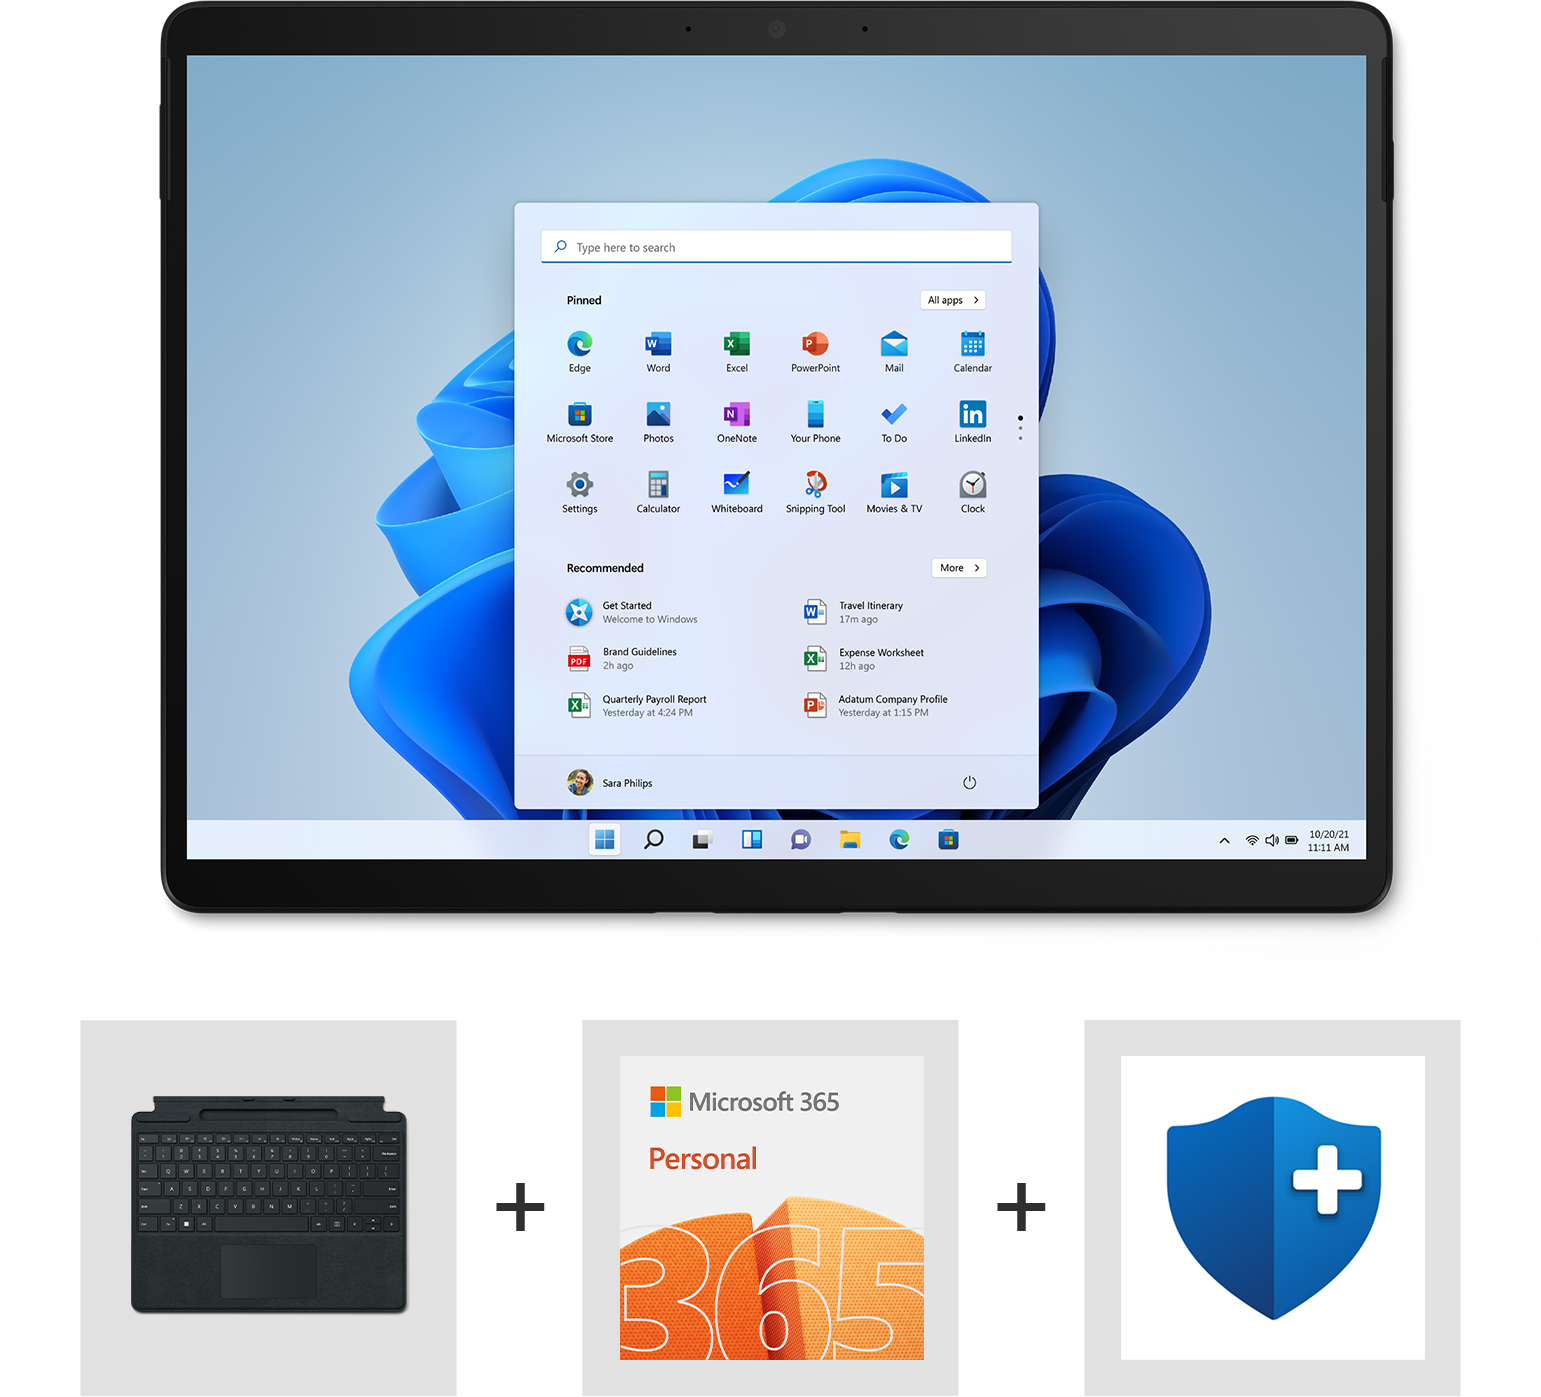 Surface Pro 8, Surface Pro Signature Keyboard, and icons for Microsoft 365, and Microsoft Complete Protection Plan.